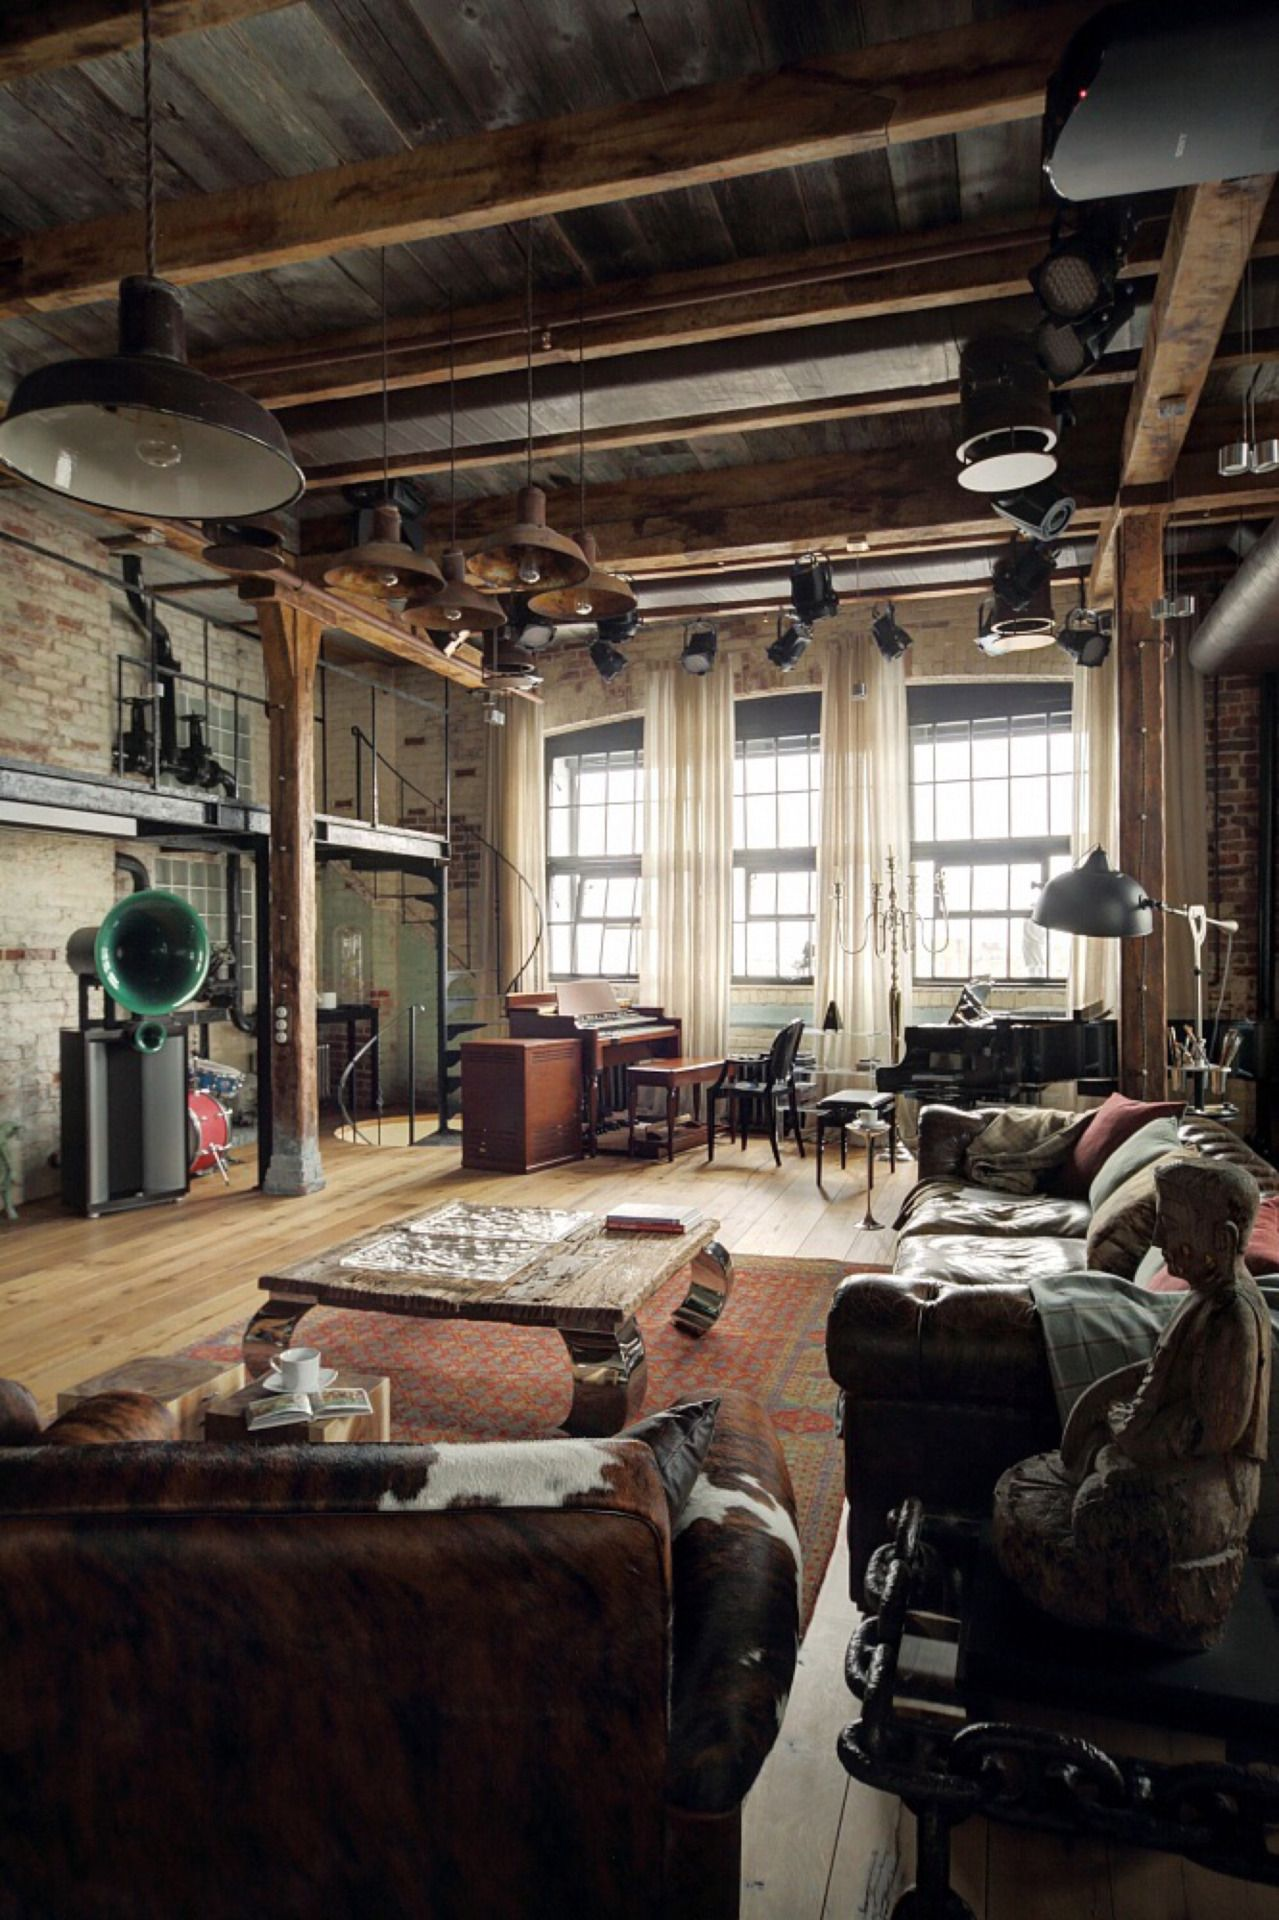 Home Interior Design — Eclectic industrial loft apartment with an ...